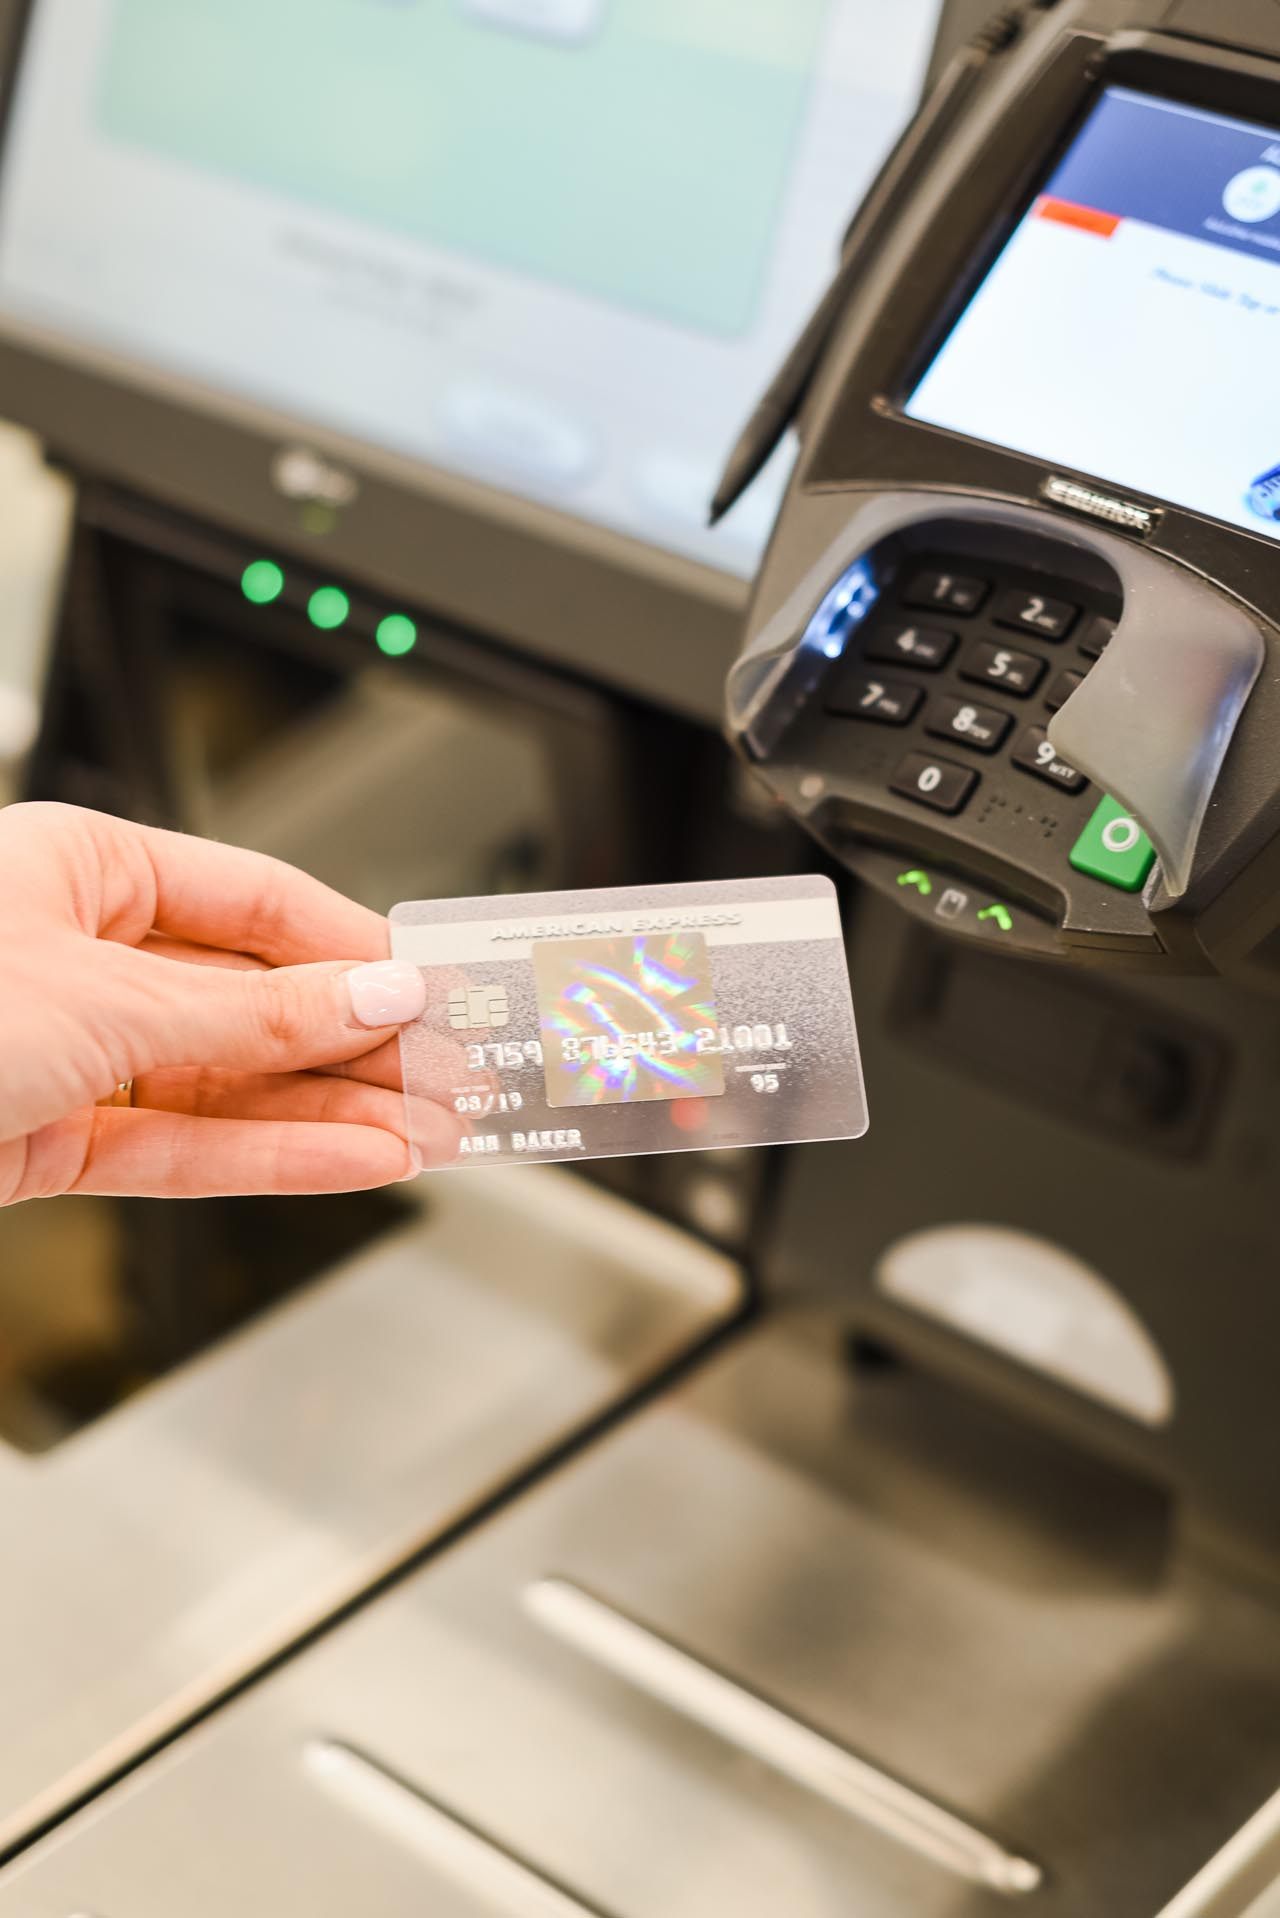 Teaming Up with American Express and the Amex EveryDay Credit Card